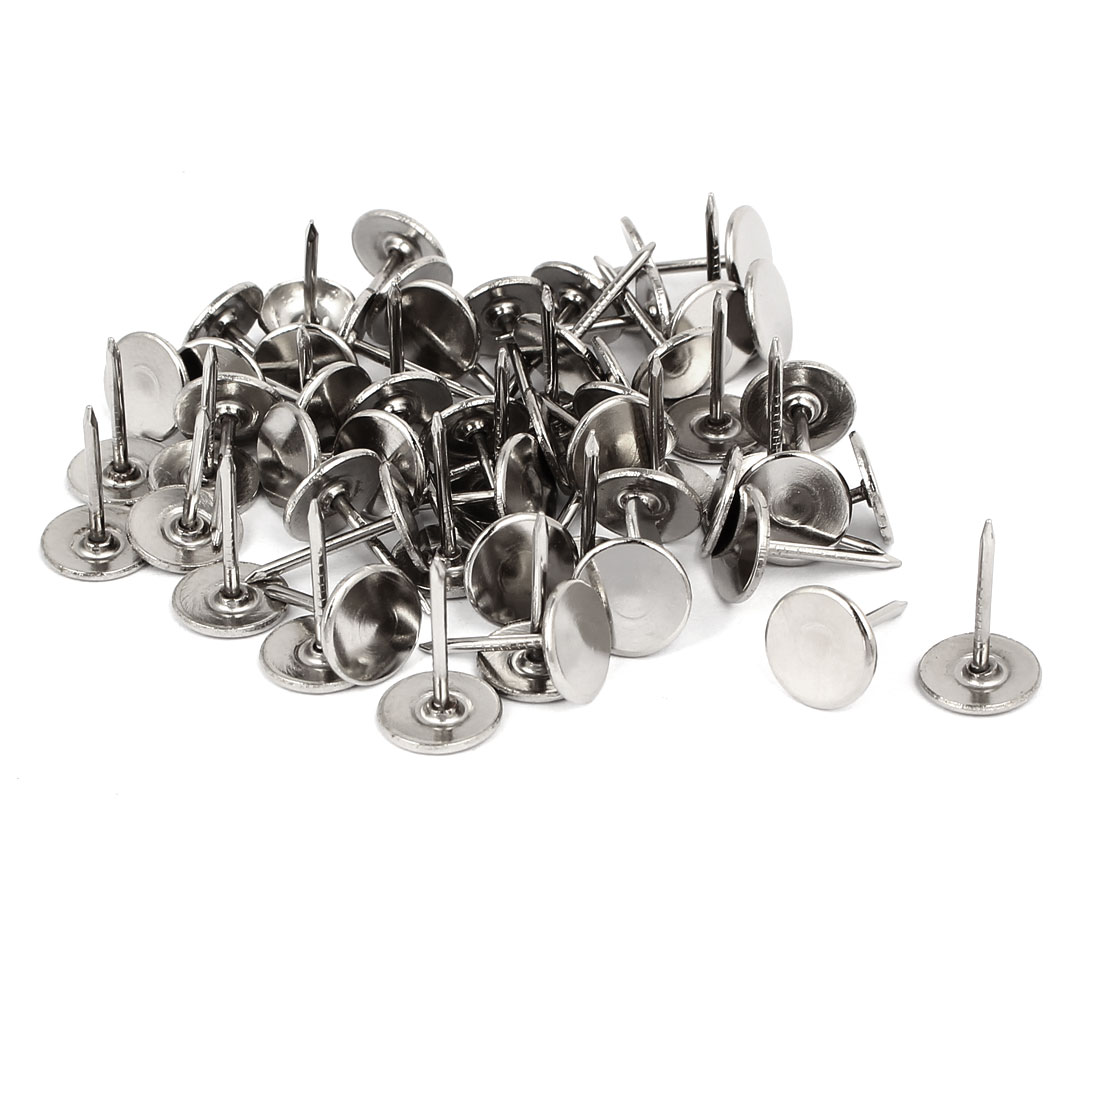 "7/16"" Dia Upholstery Nail Decorative Tack Stud Push Pin Thumbtack 60PCS"